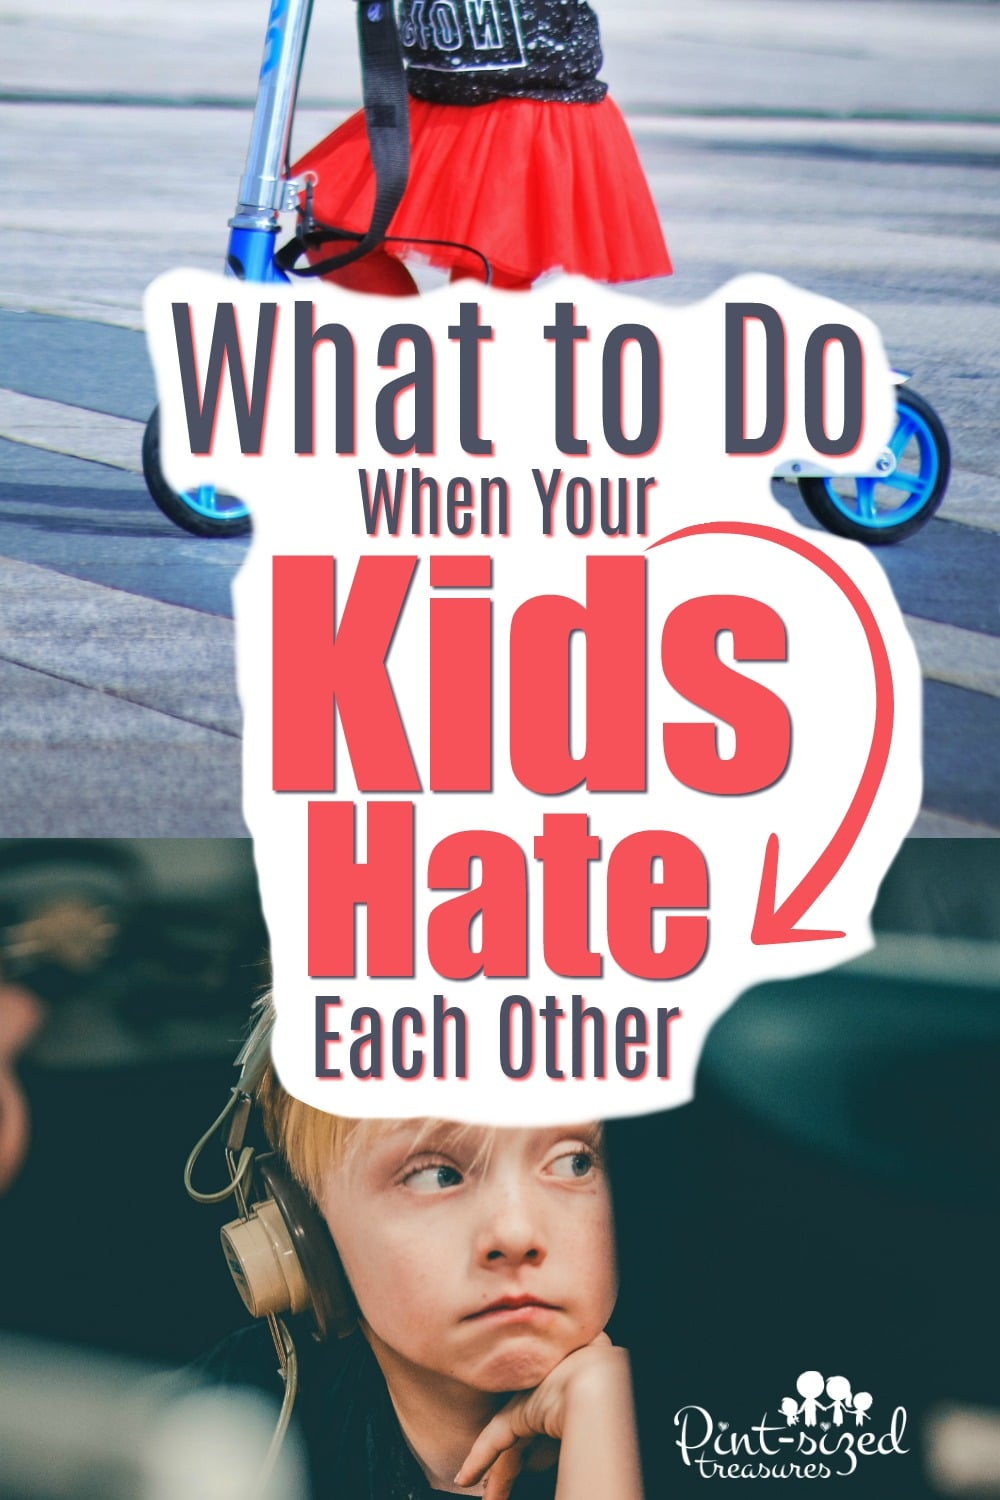 what to do when kids hate each other